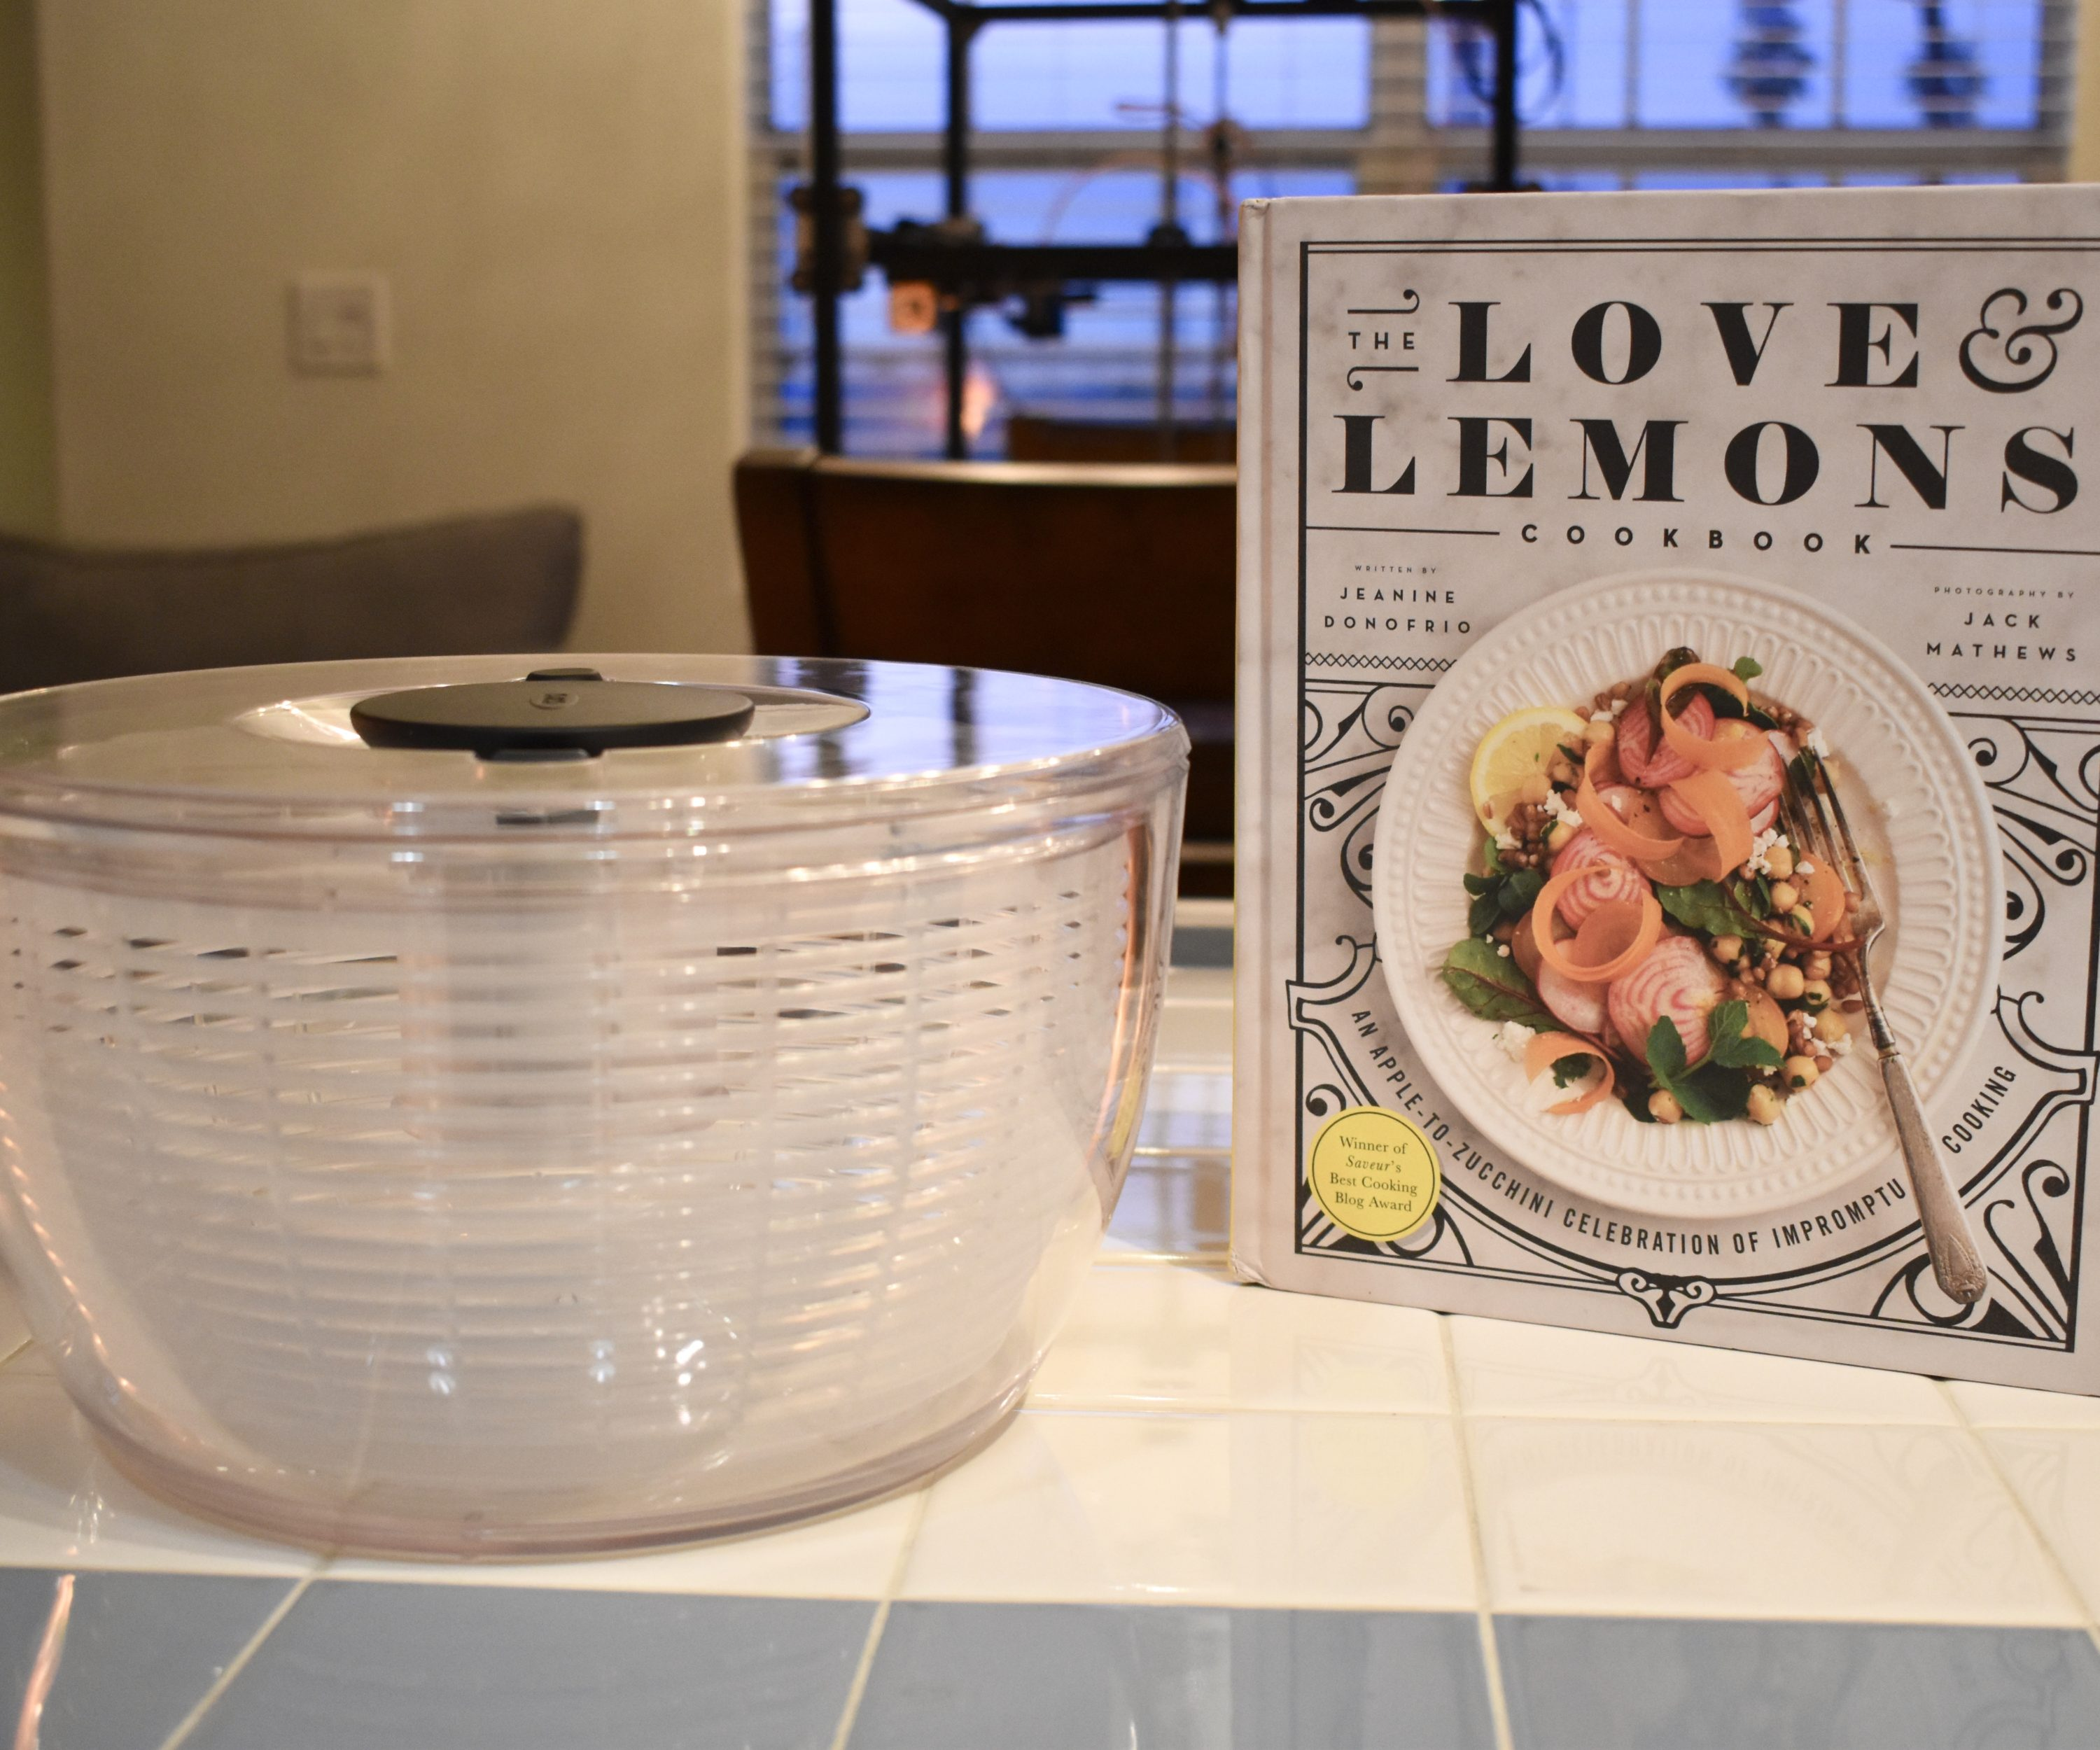 Cookbook, salad spinner